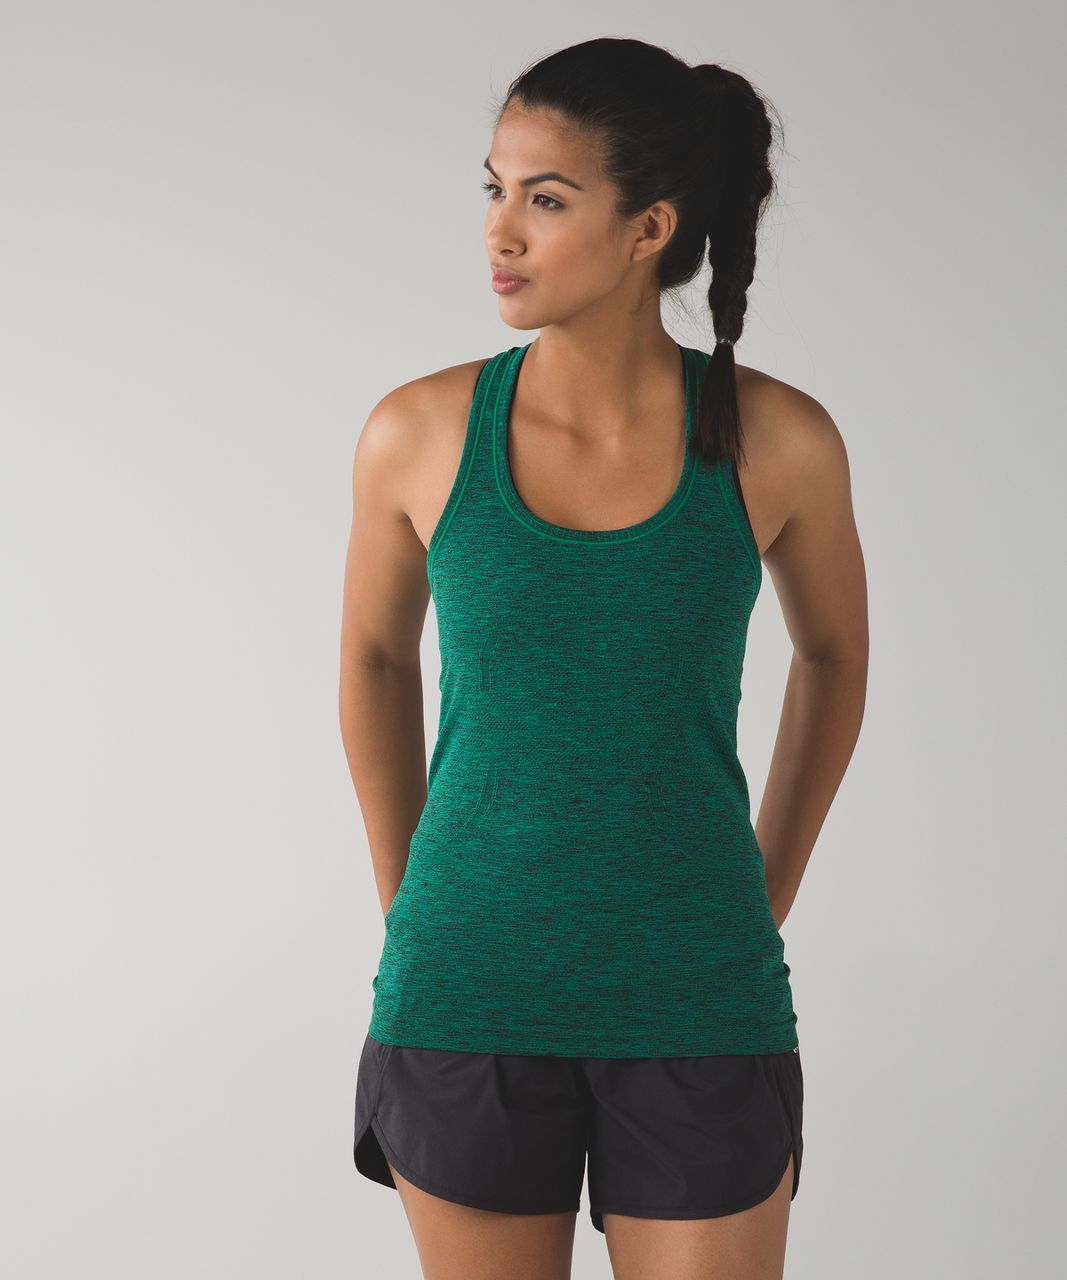 Lululemon Swiftly Tech Racerback - Heathered Jungle